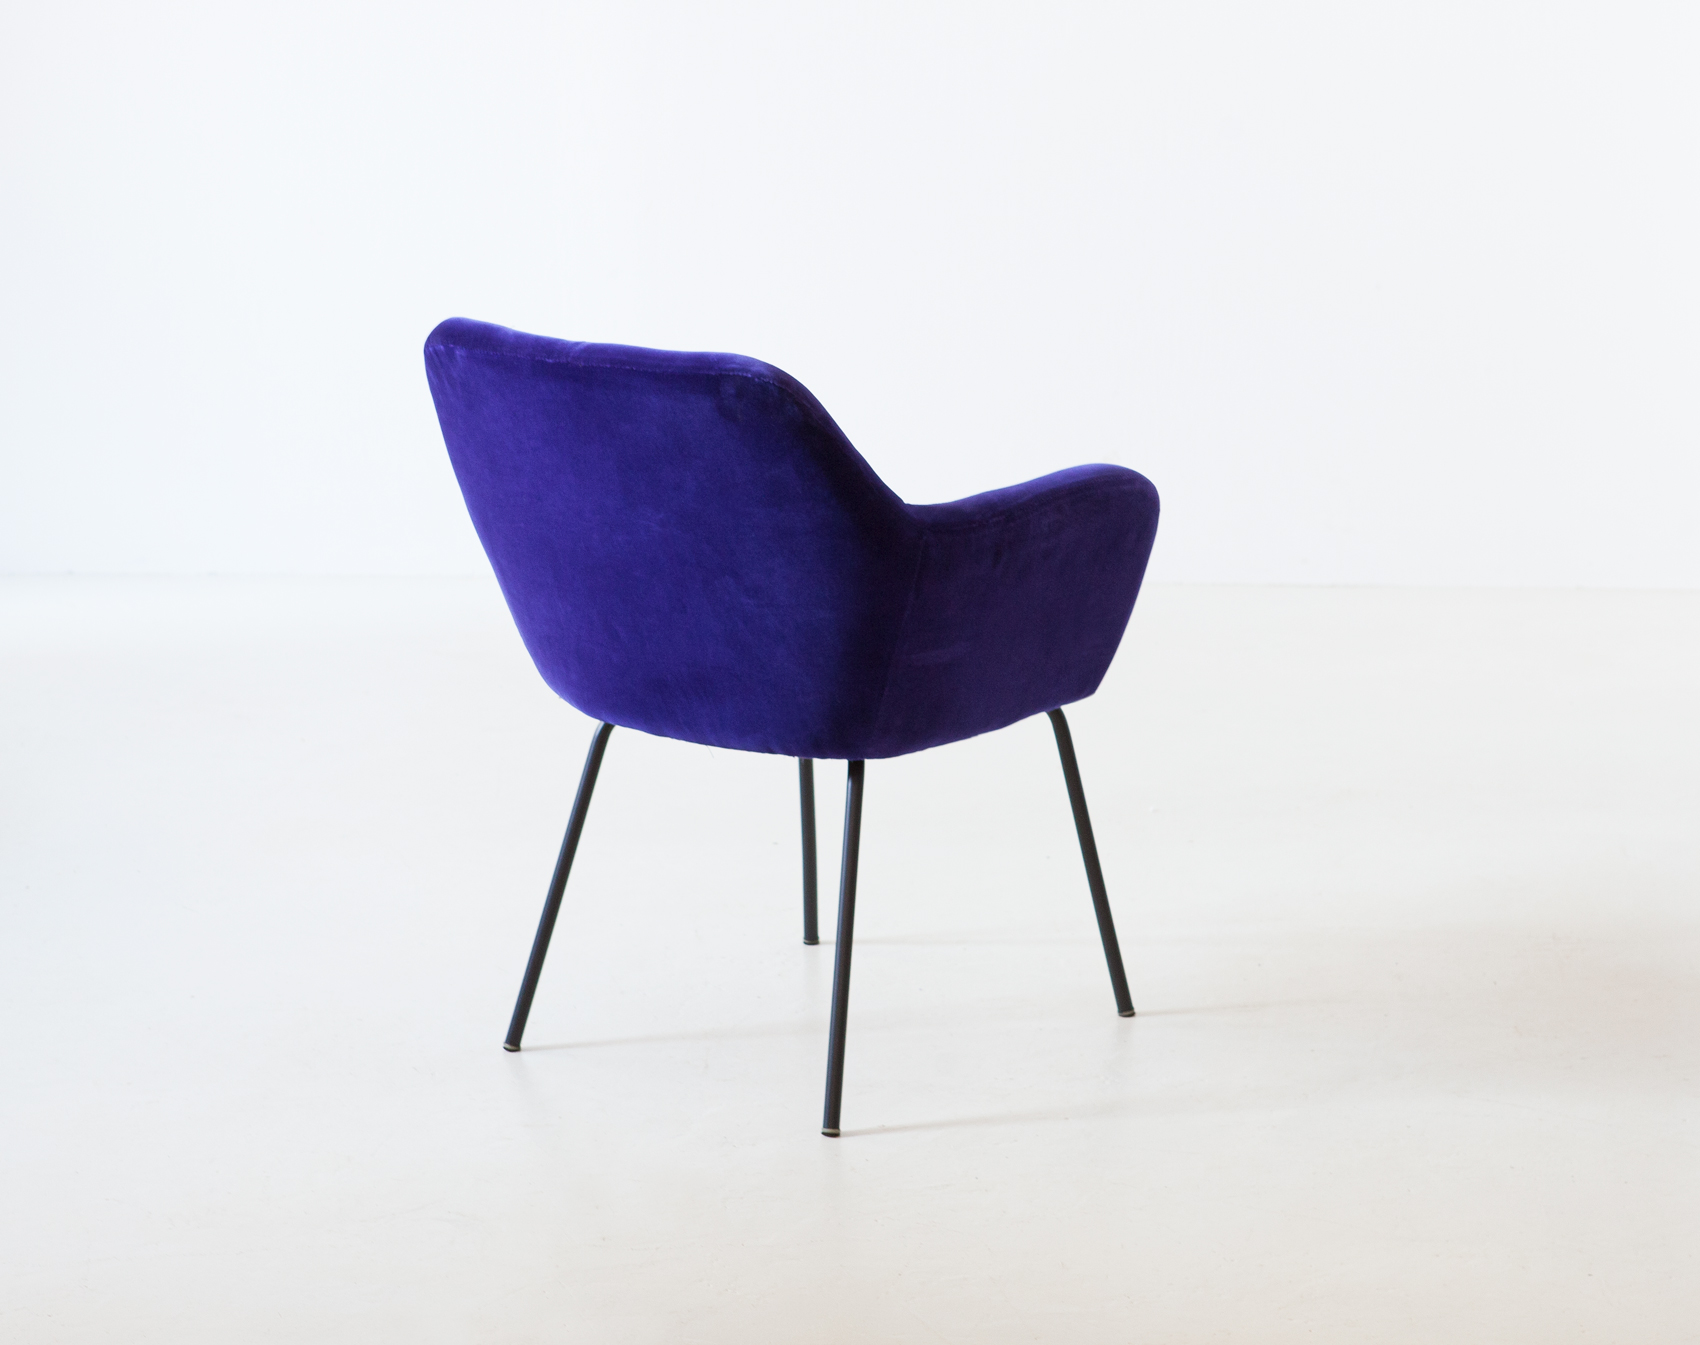 1950s-purle-velvet-armchair-by-studio-pfr-for--arflex-7-se318